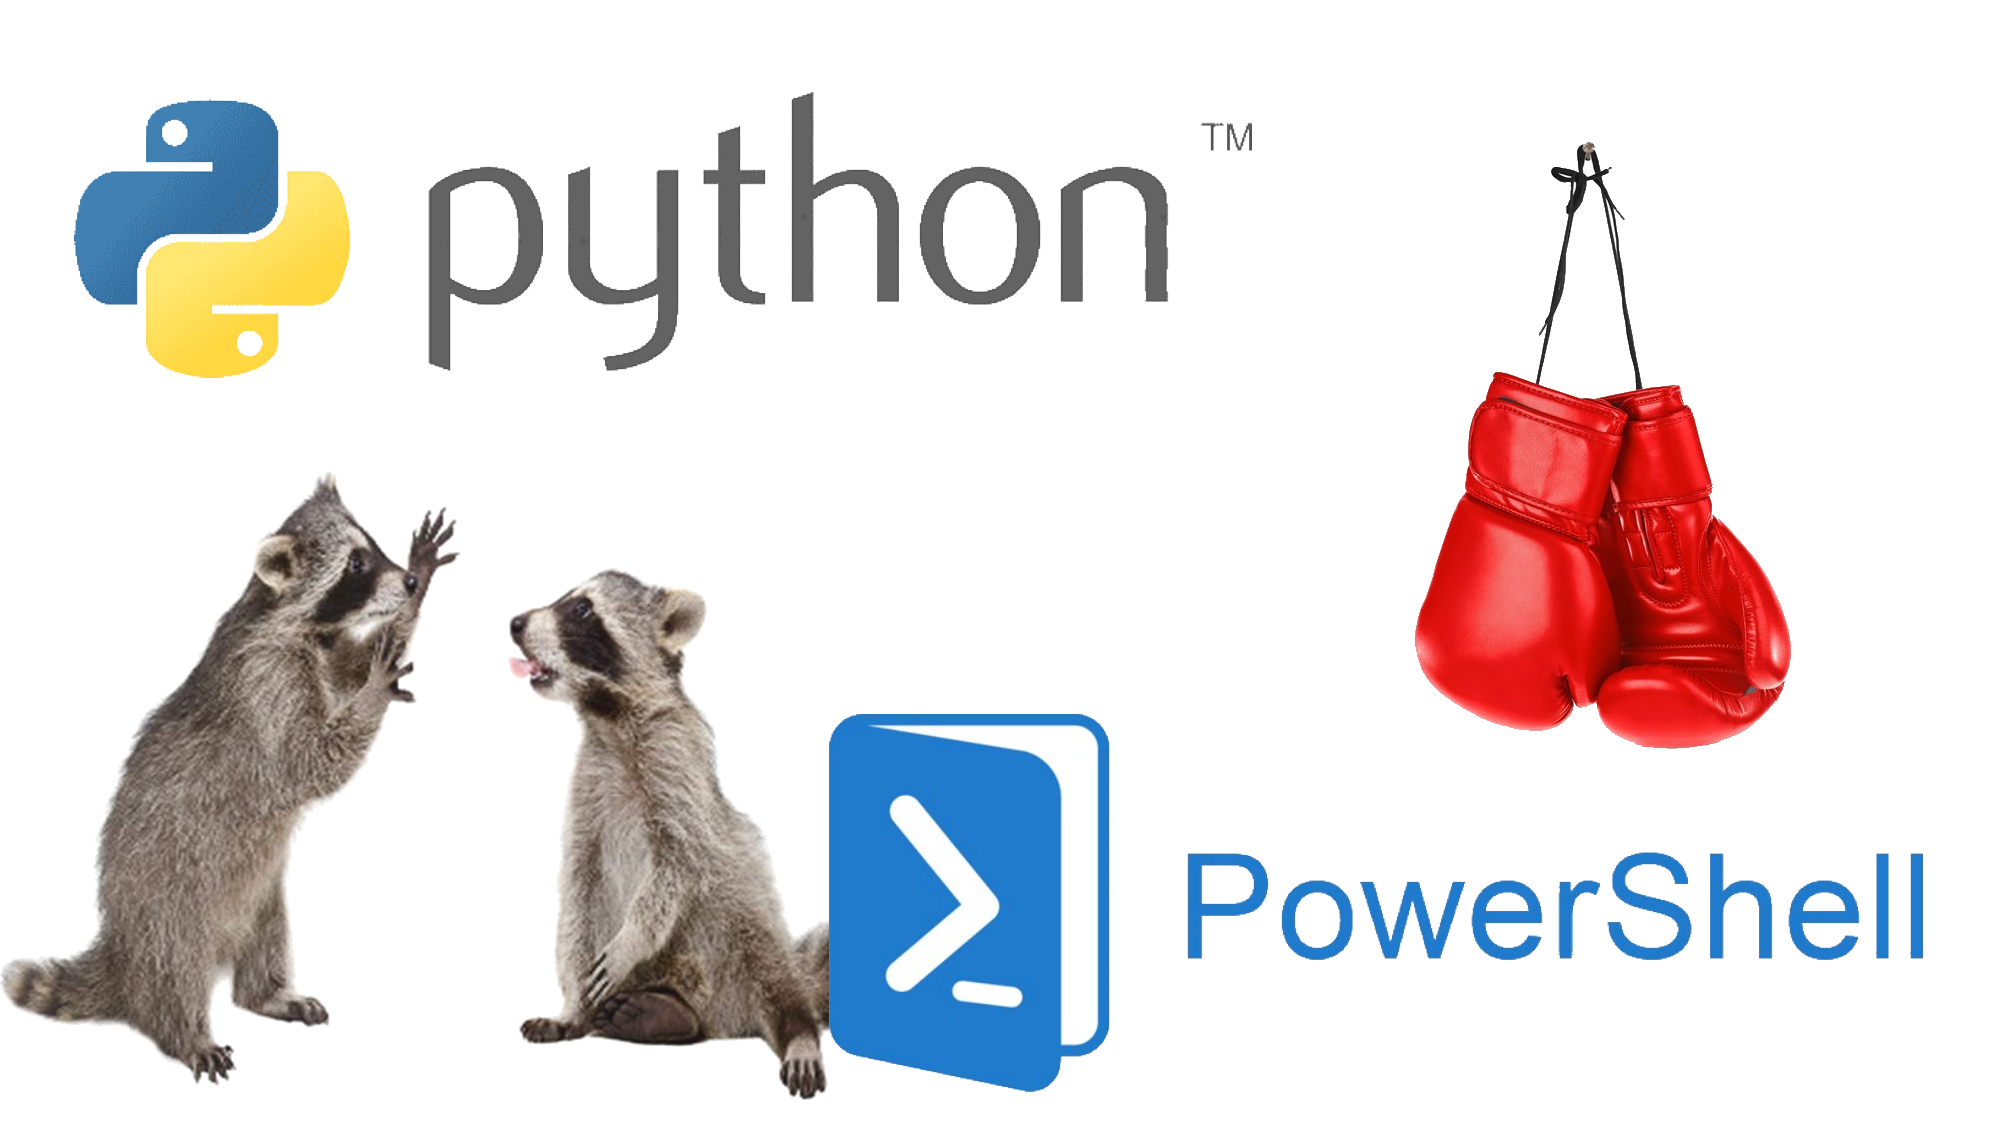 The Syntax Difference Between Python and PowerShell